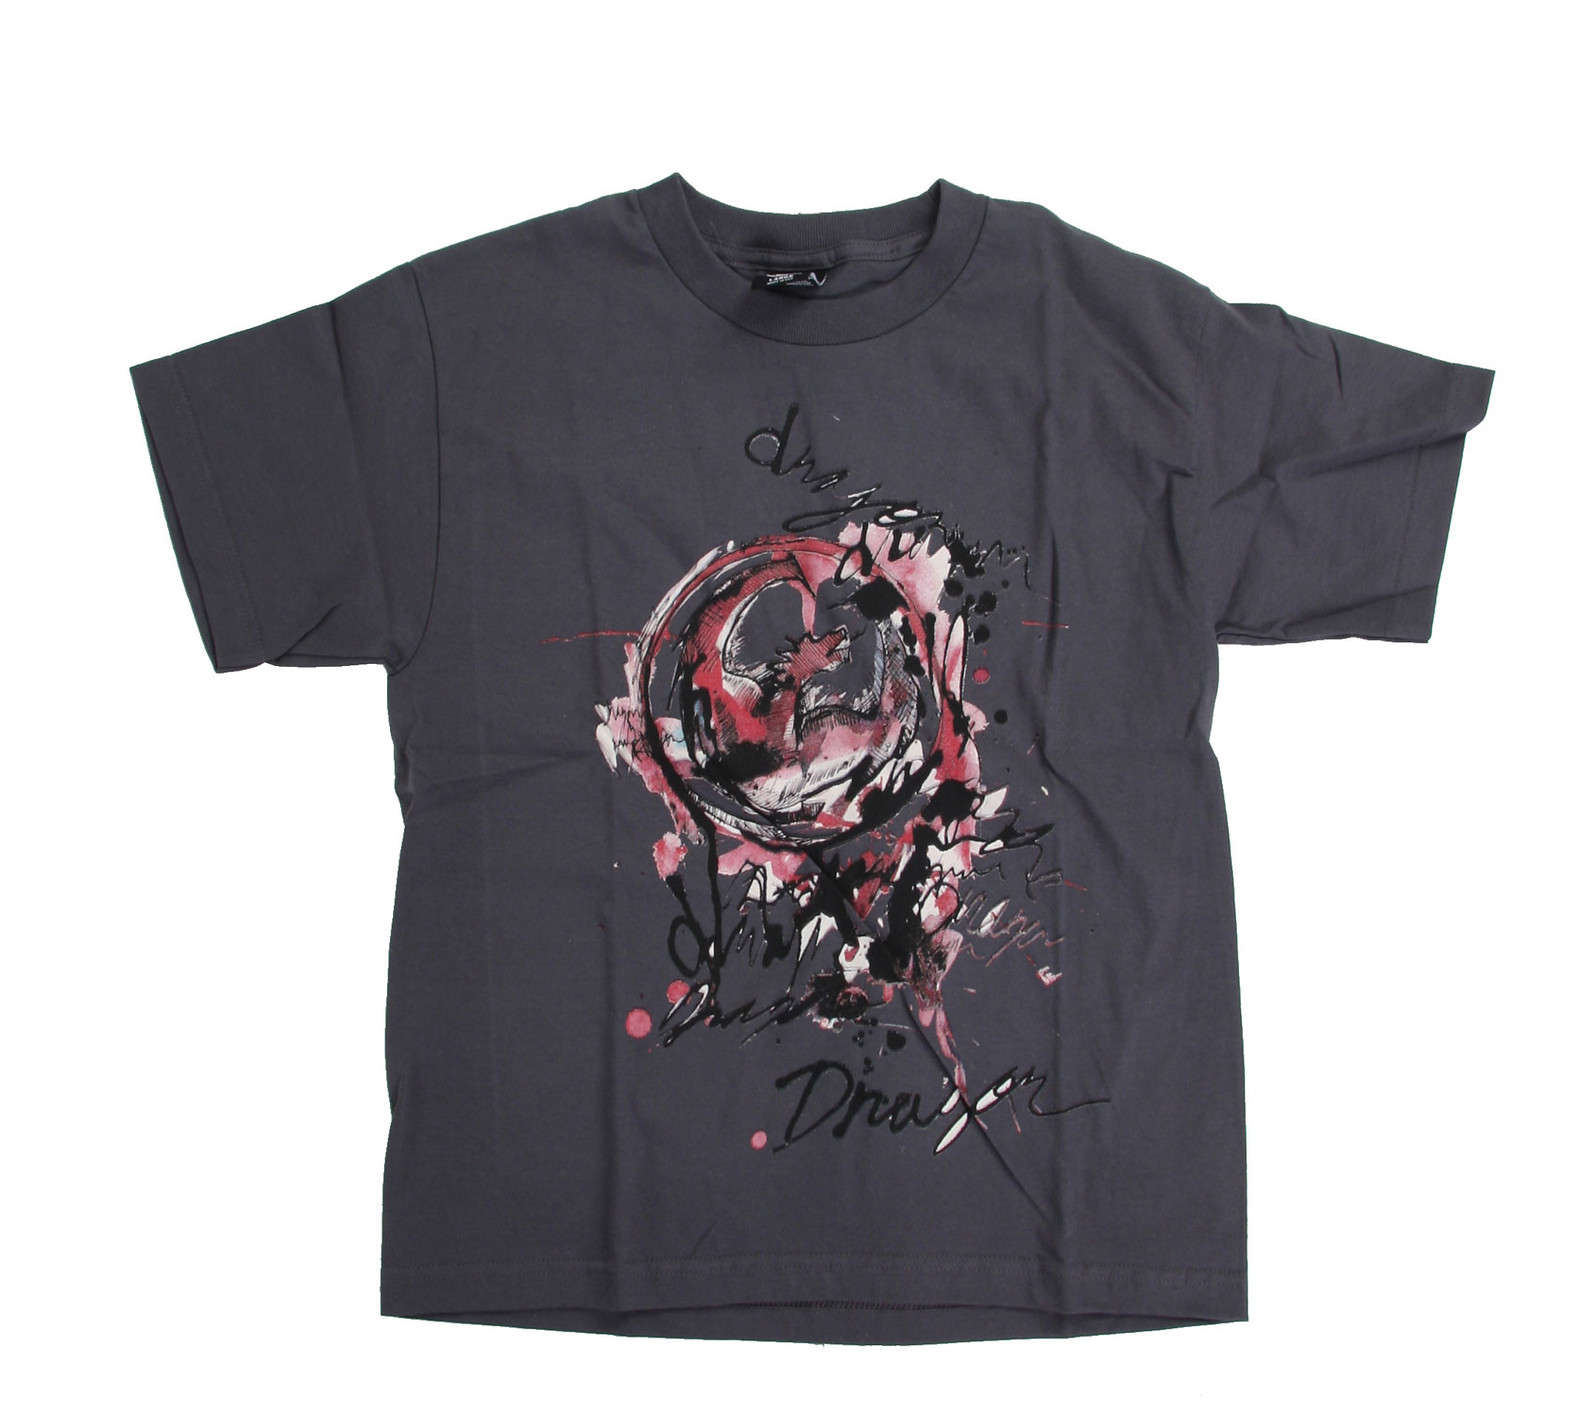 Dragon Washed Out T-Shirt Charcoal  dragon-washedout-t-yth-chrcl-10.jpg